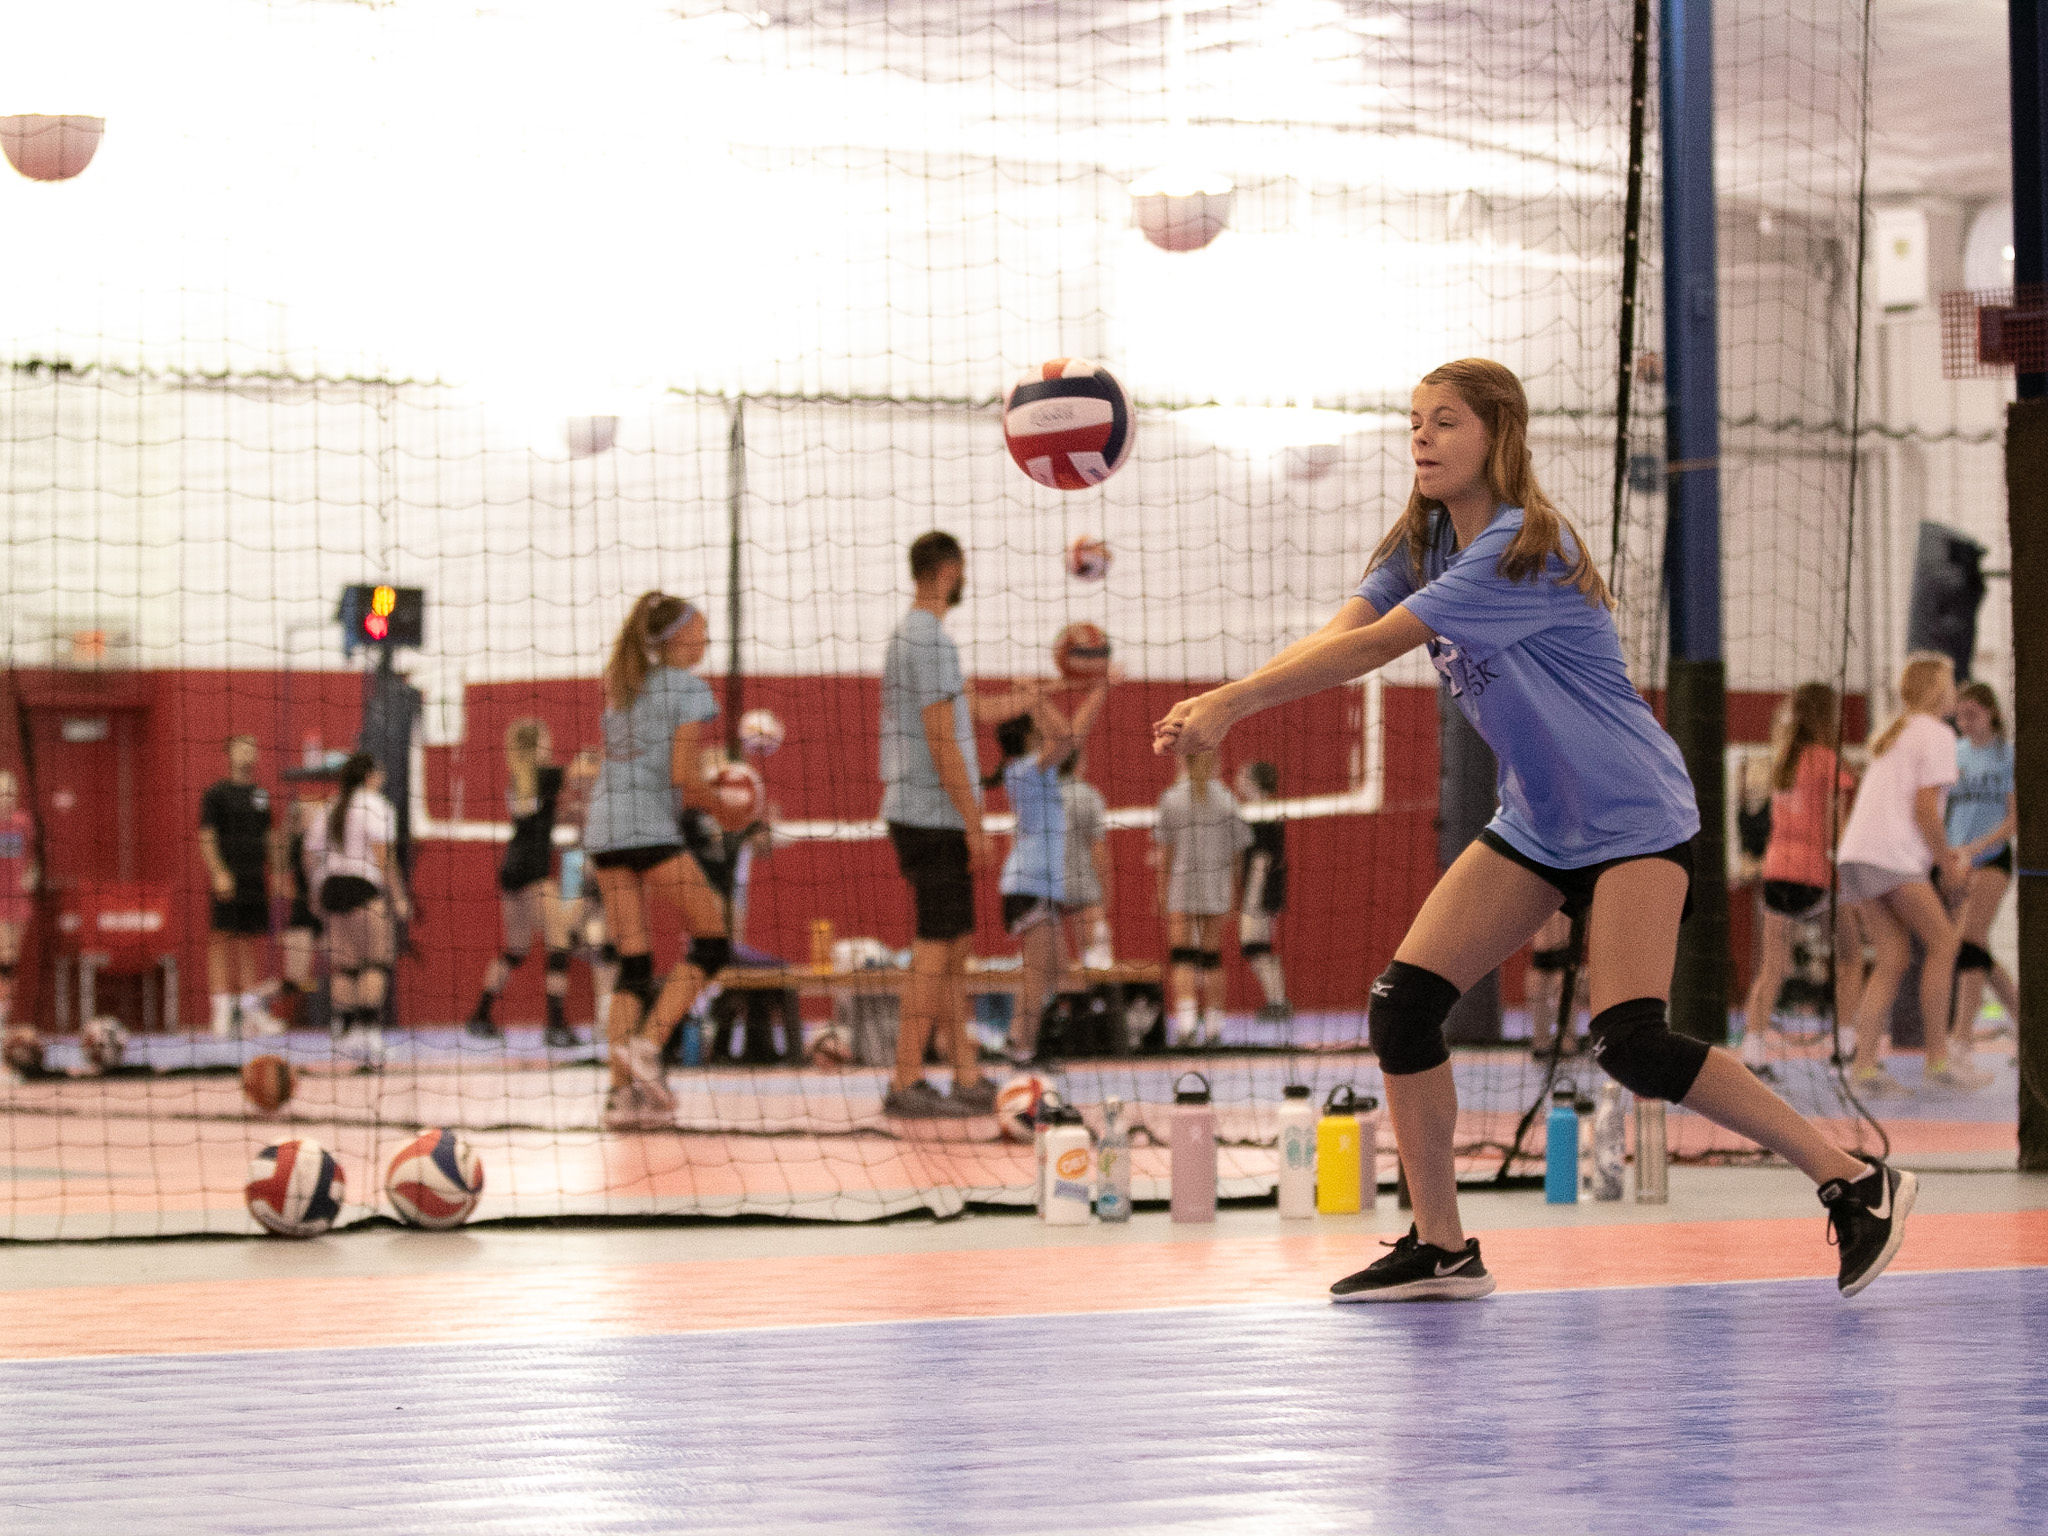 Richmond Volleyball Club summer camps player passing a volleyball